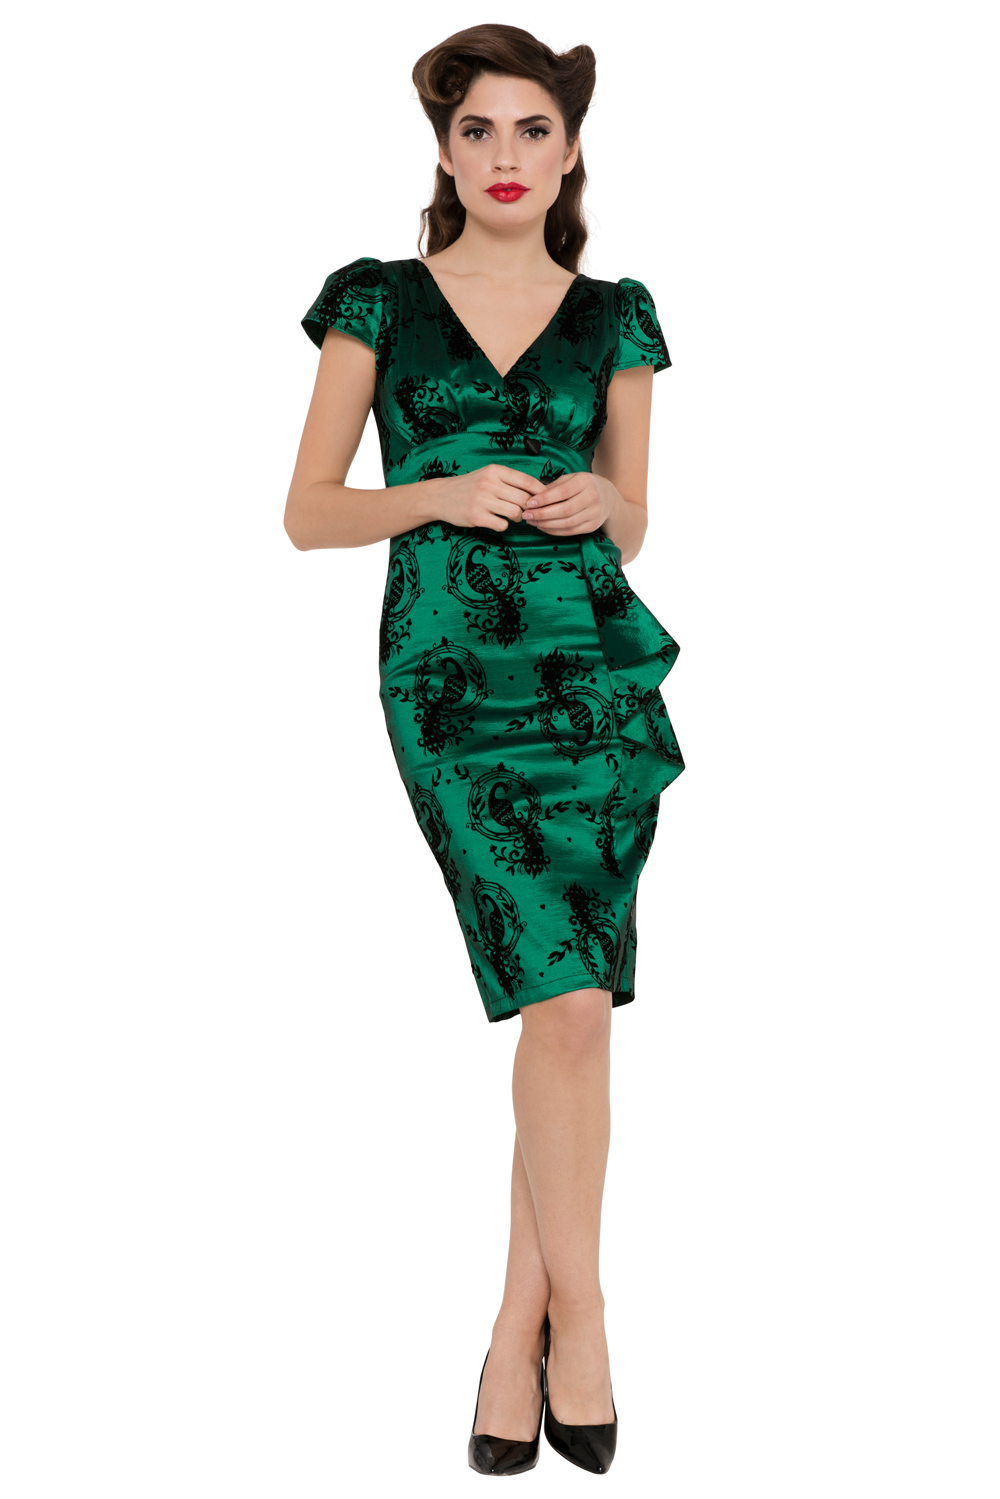 Candy Ann Green Peacock Print Dress